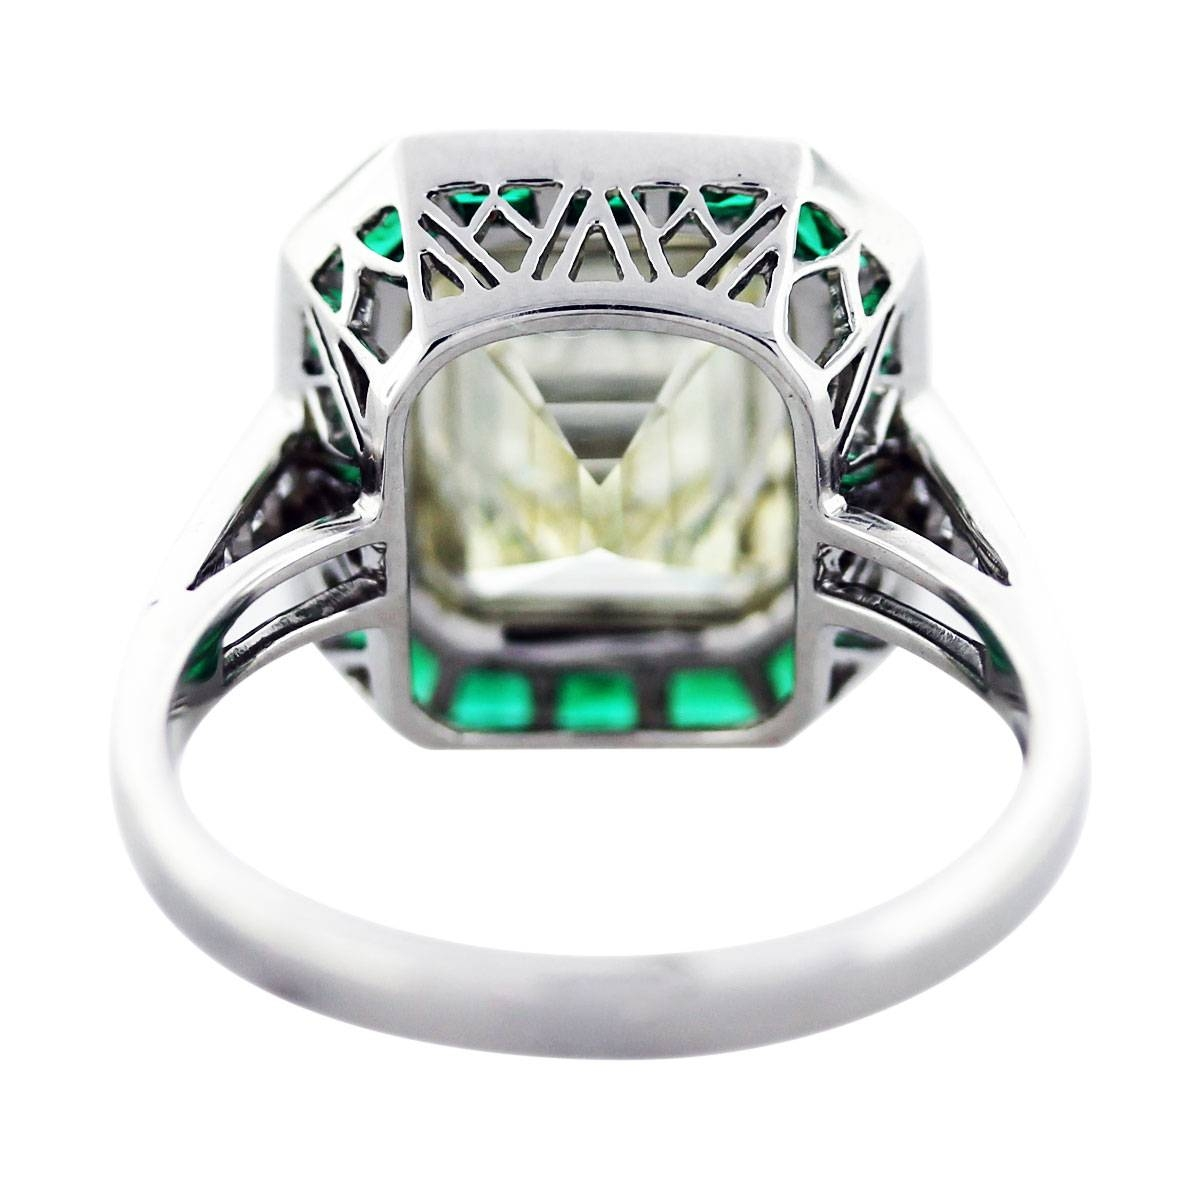 5 Ct Emerald Cut Diamond Emerald Platinum Engagement Ring Boca Raton For Emerald And Diamond Wedding Rings (View 5 of 15)